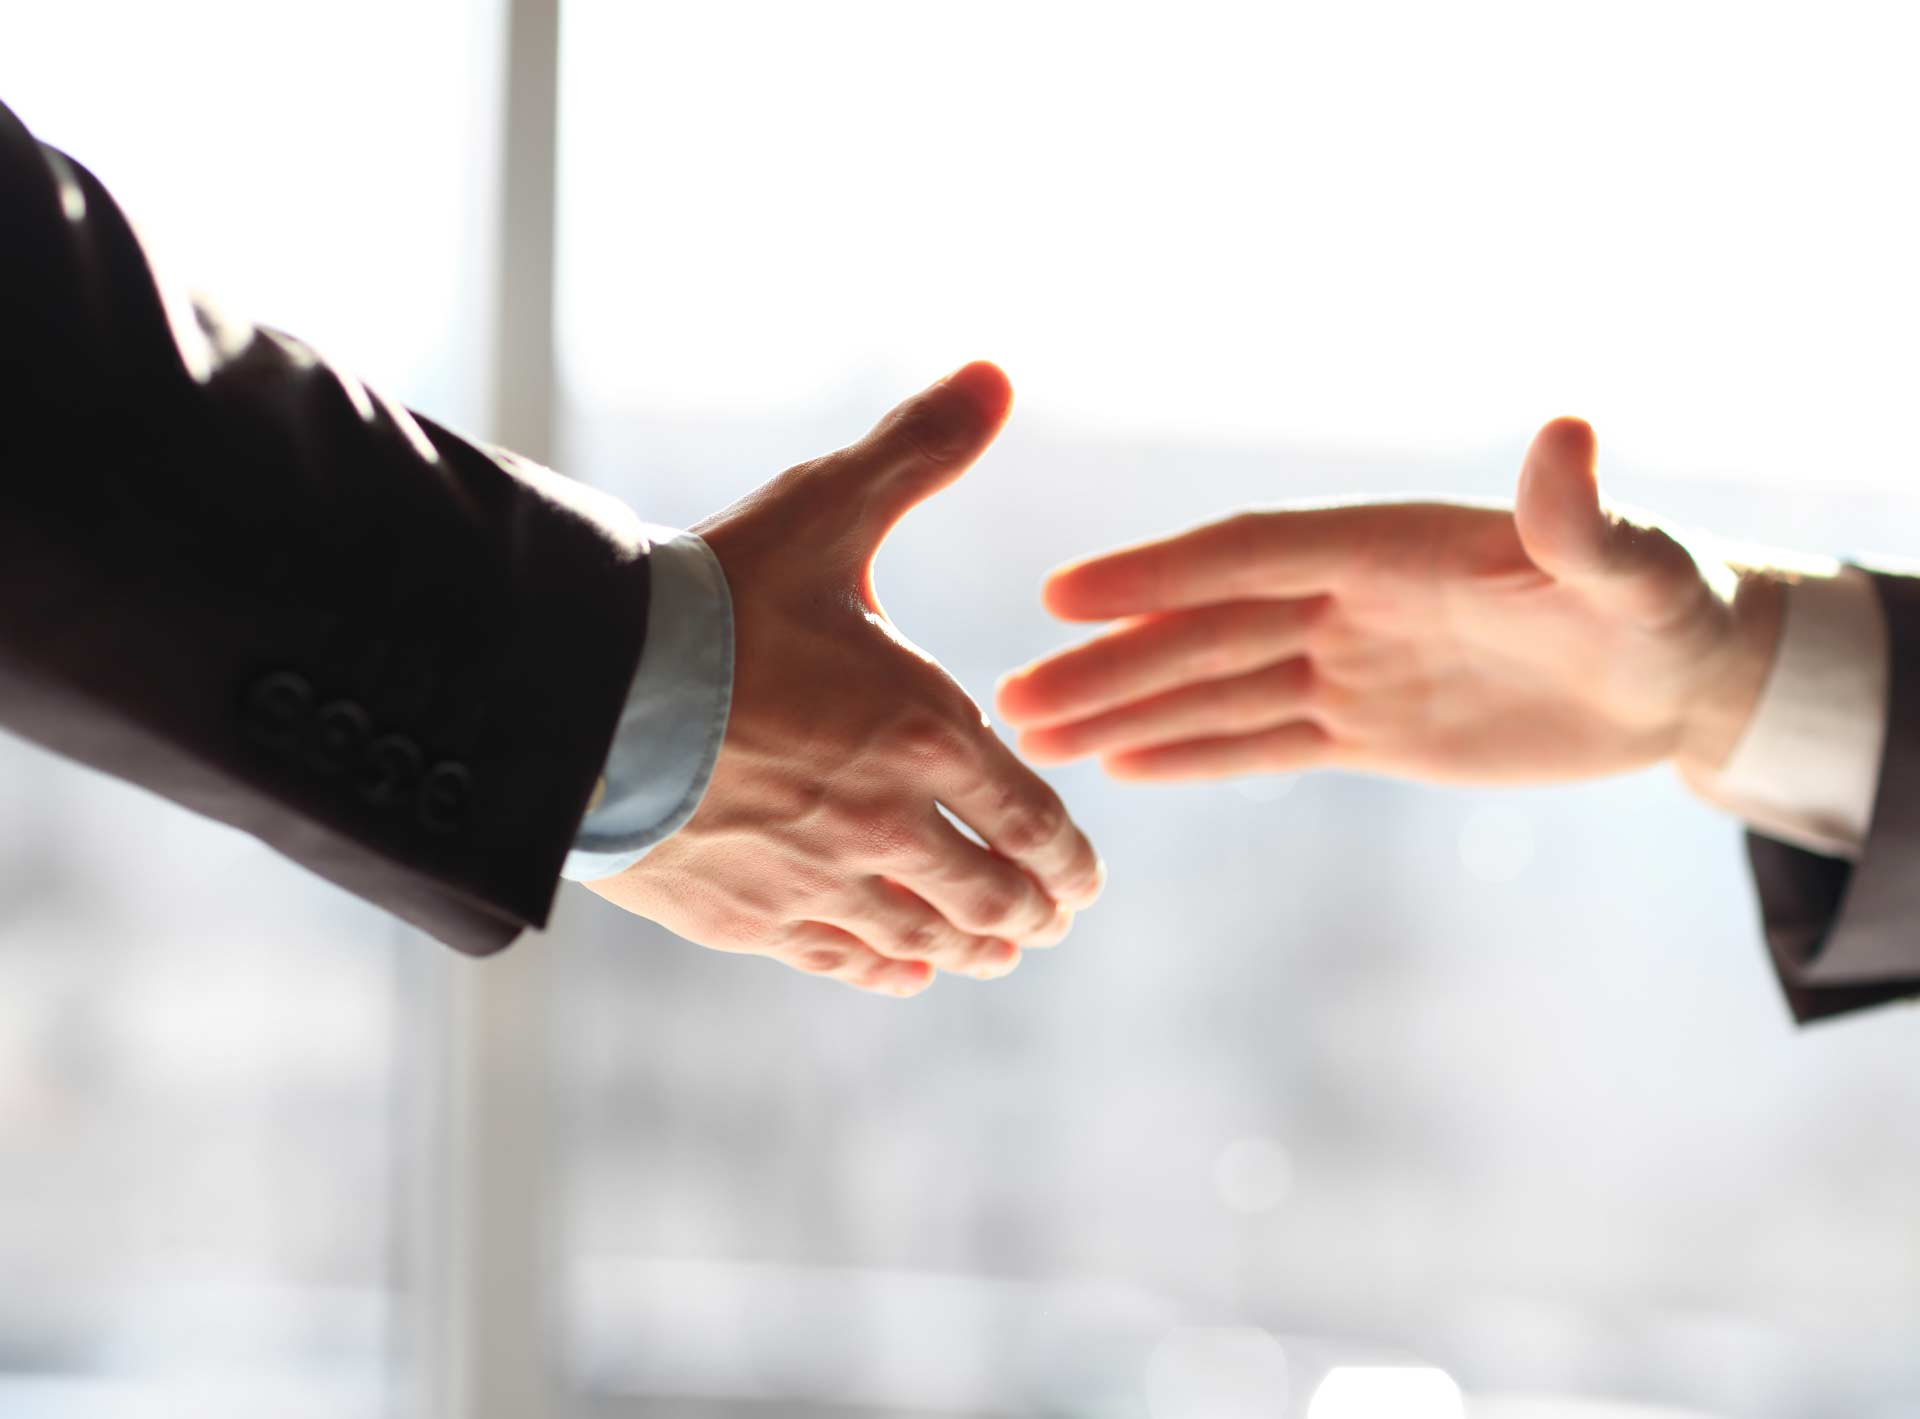 Two hands outstretched about to meet for a handshake partner trial sign up